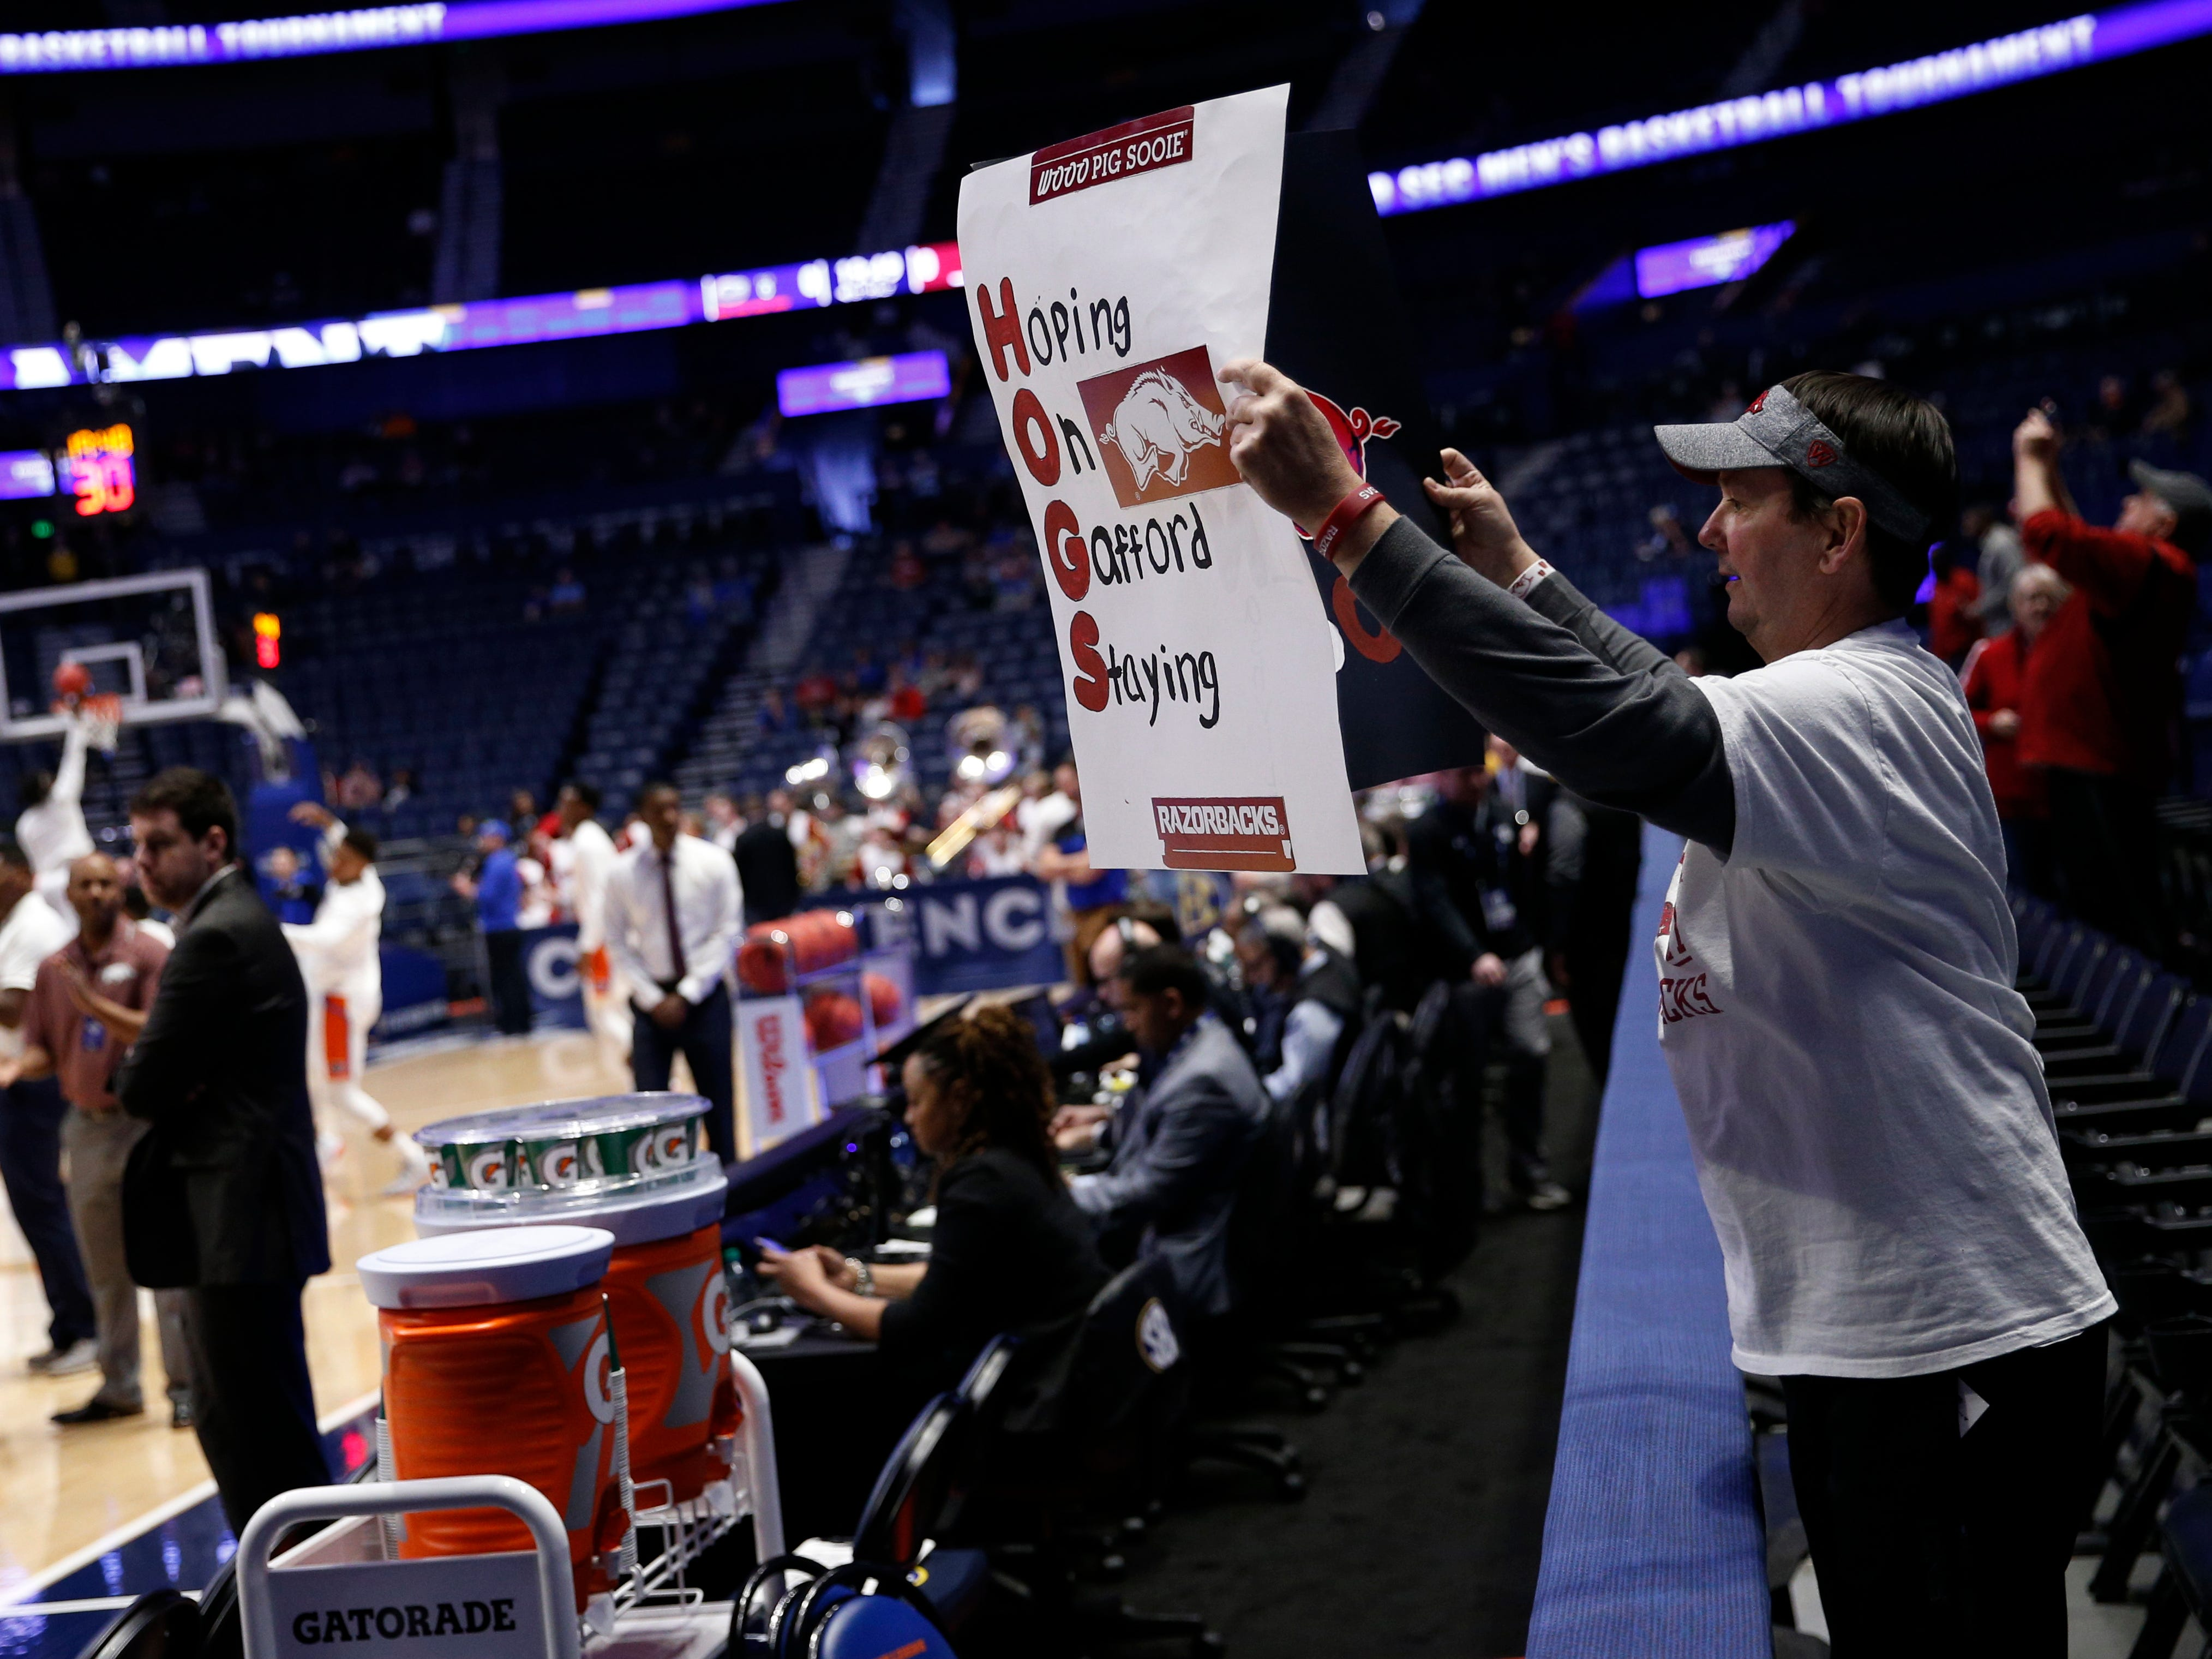 An Arkansas fan holds a sign for the team as it comes onto the court before the SEC Men's Basketball Tournament game at Bridgestone Arena in Nashville, Tenn., Thursday, March 14, 2019.